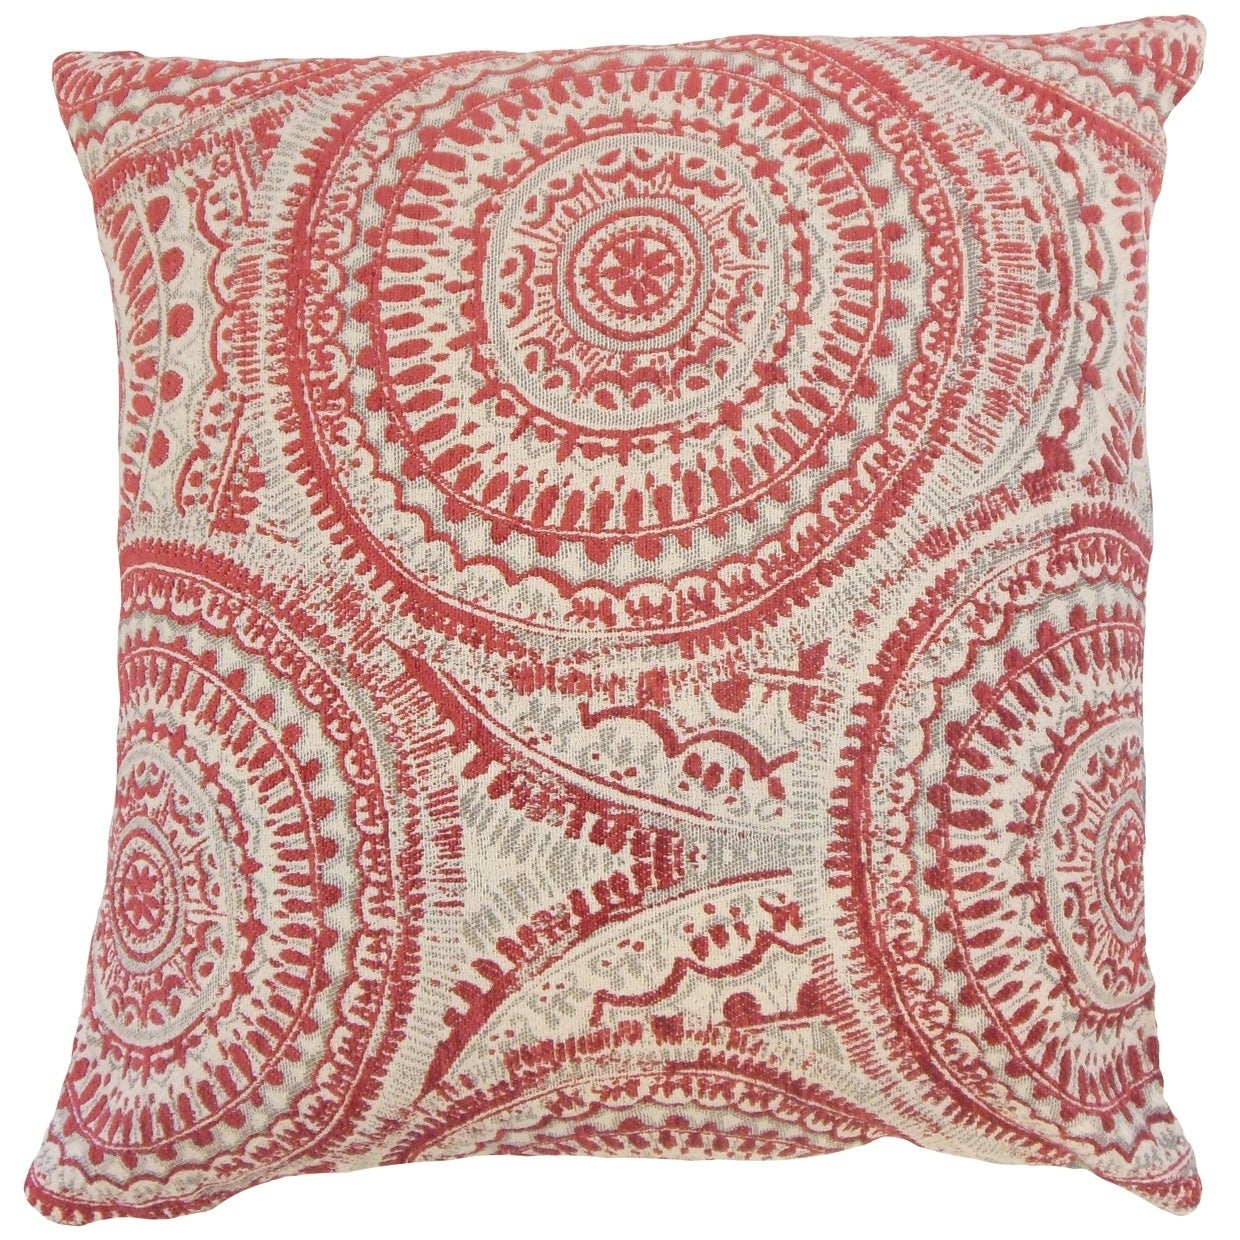 Chione Graphic Floor Pillow Cherry